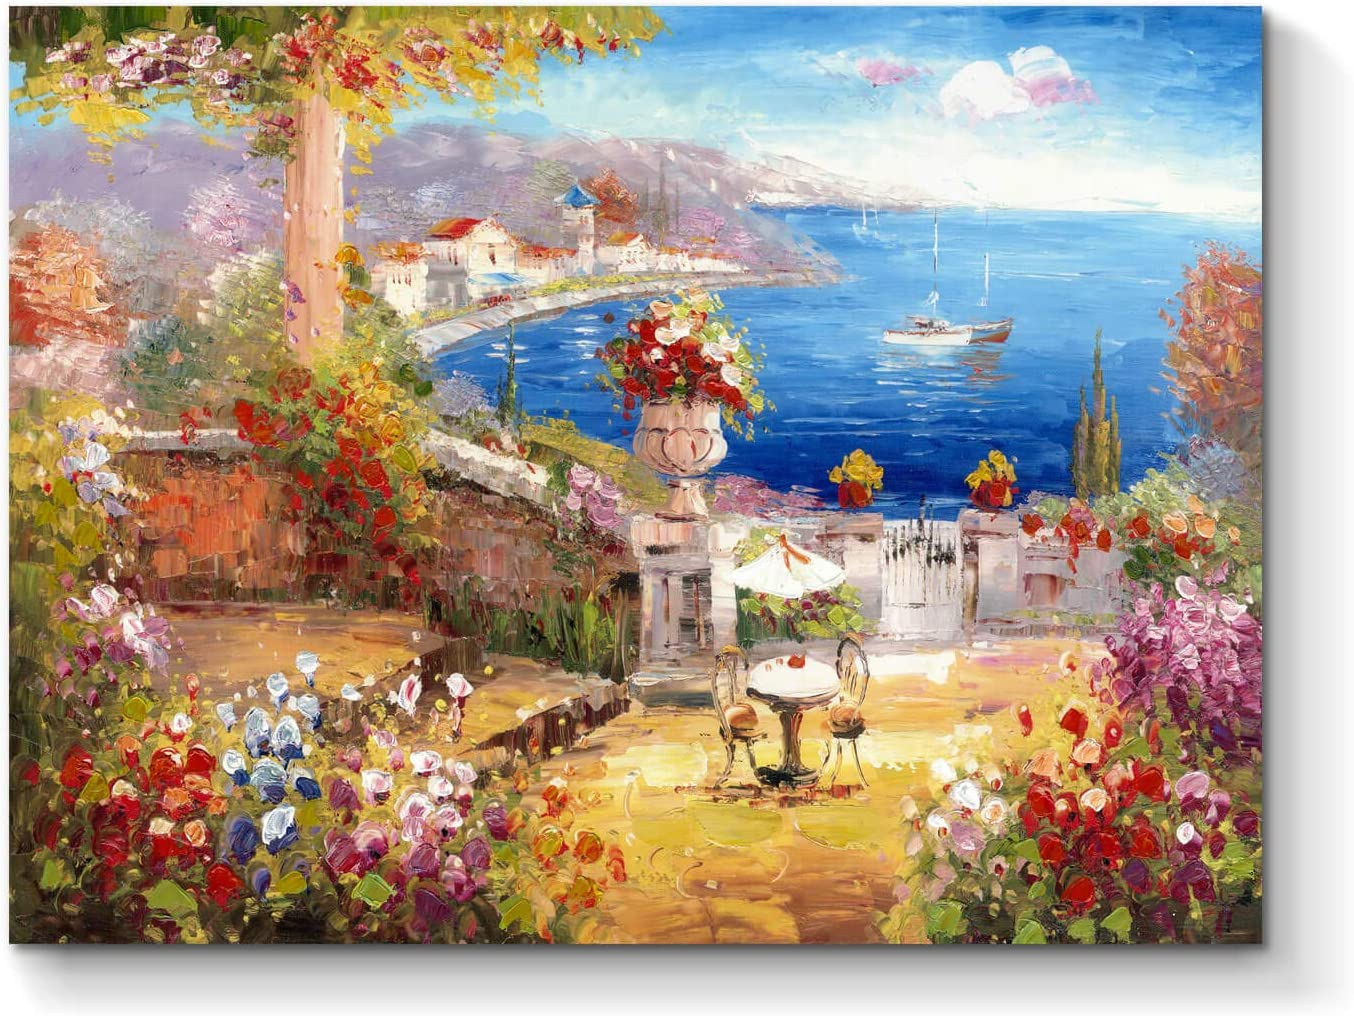 Abstract Picture Canvas Wall Art: Seaside Village Hand Painted Artwork Painting on Canvas for Living Room (24'' x 18'' x 1 Panel)